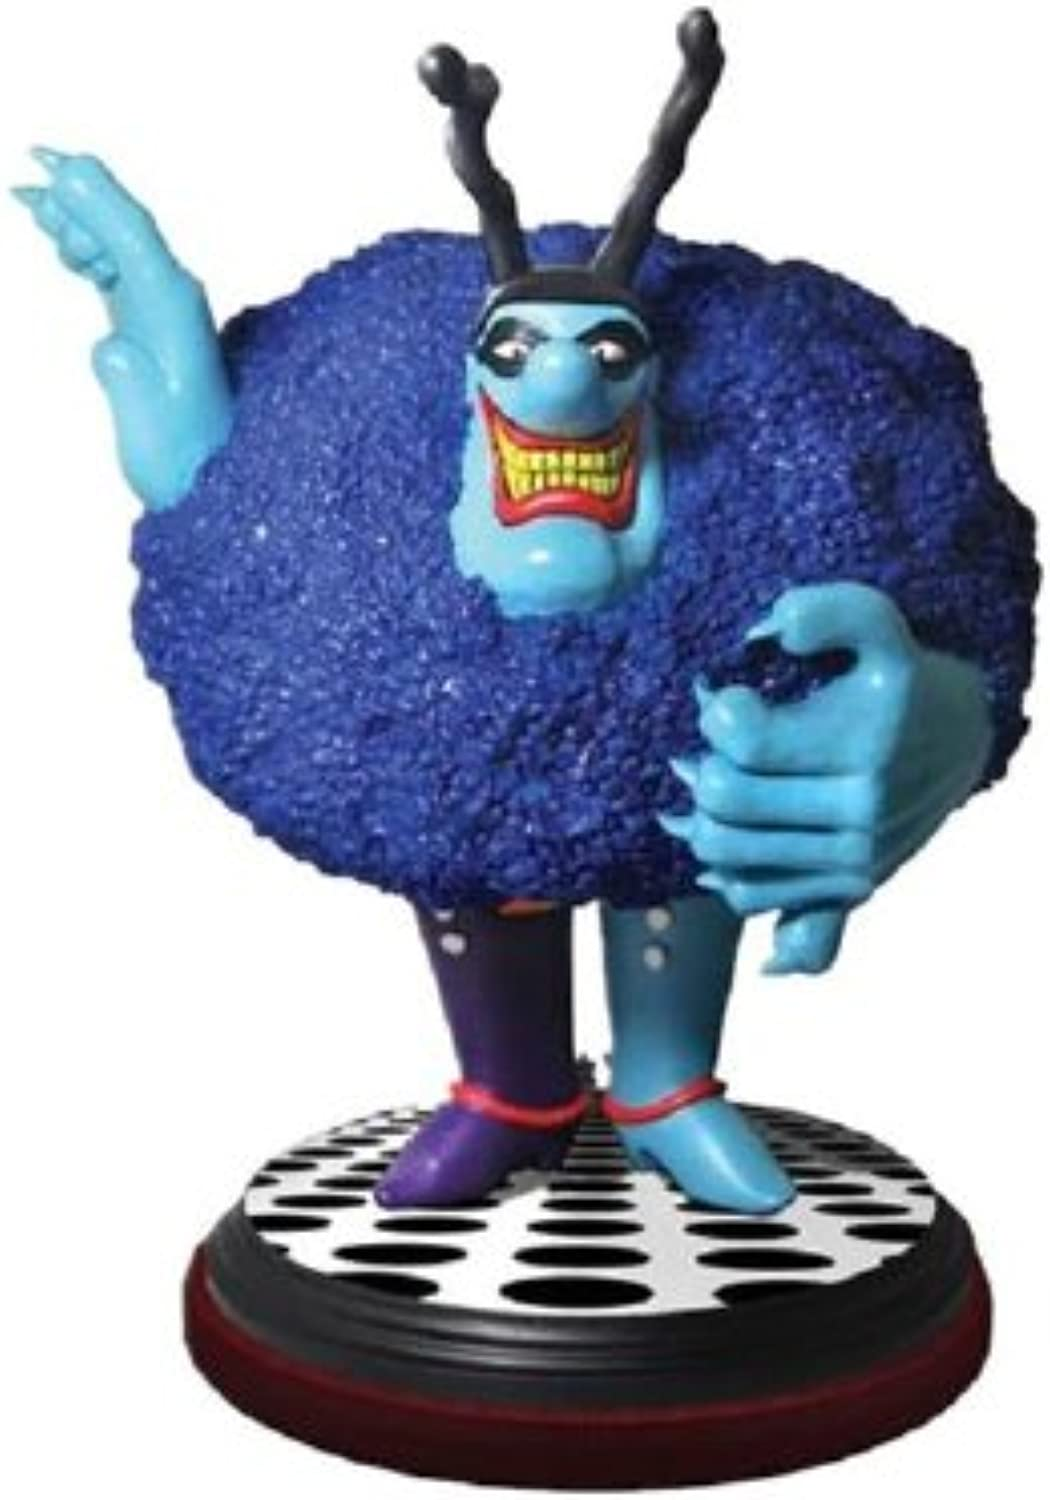 Rock Iconz The Beatles Yellow Submarine bluee Meanie Ltd. Edition Statue